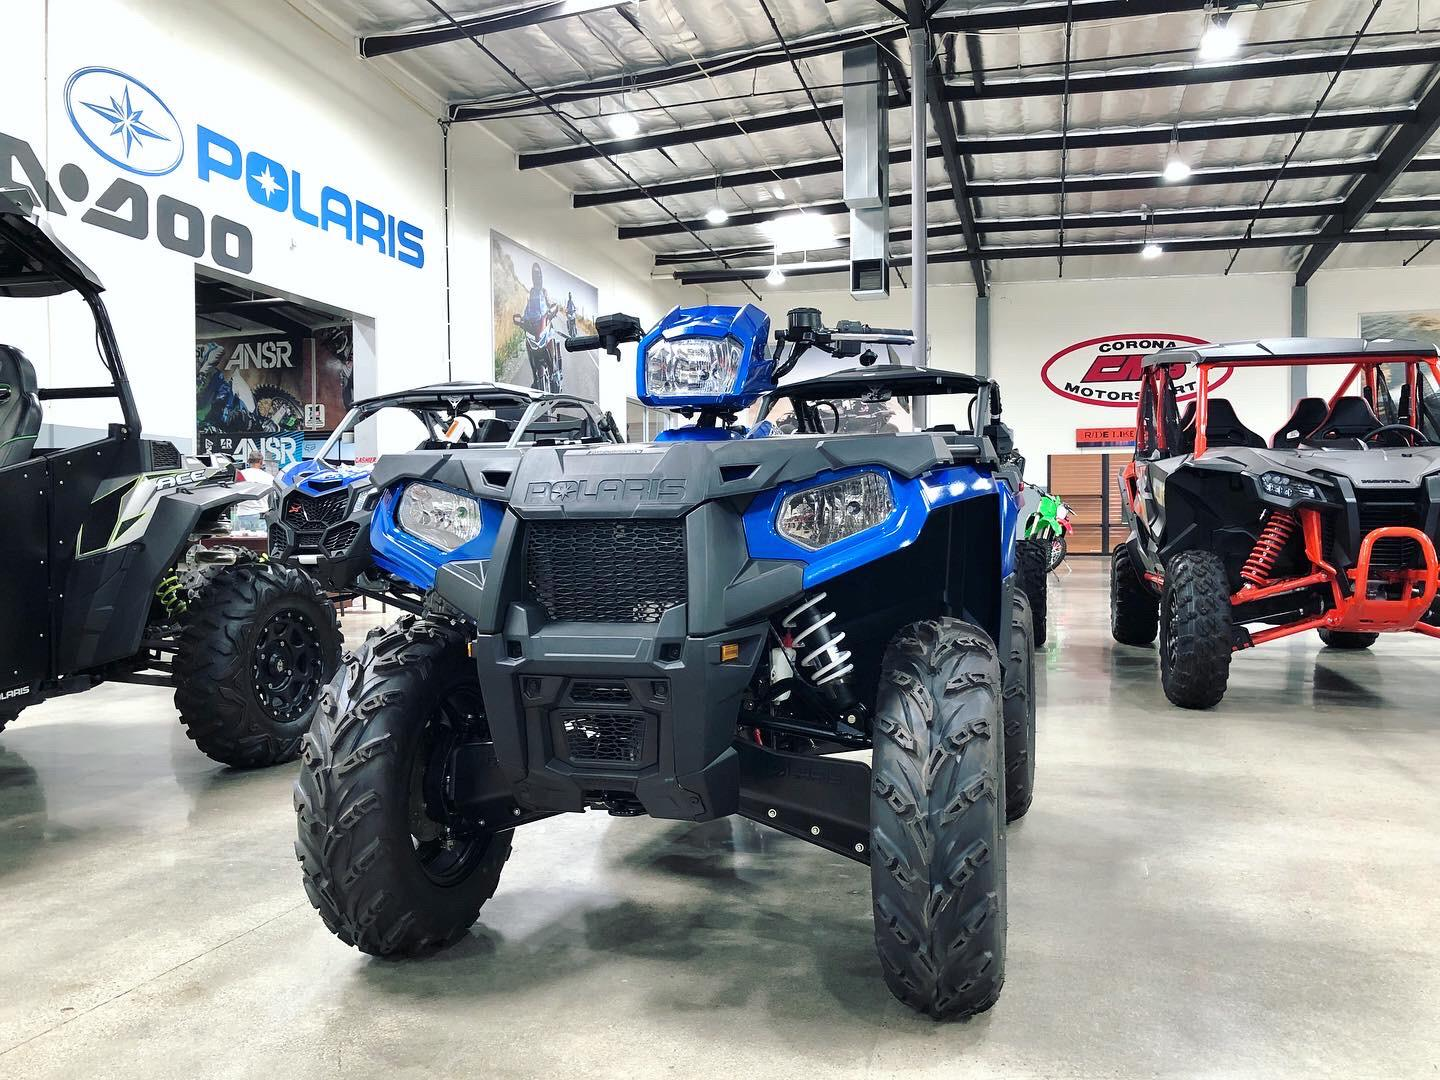 2020 Polaris Sportsman 570 Premium in Corona, California - Photo 2